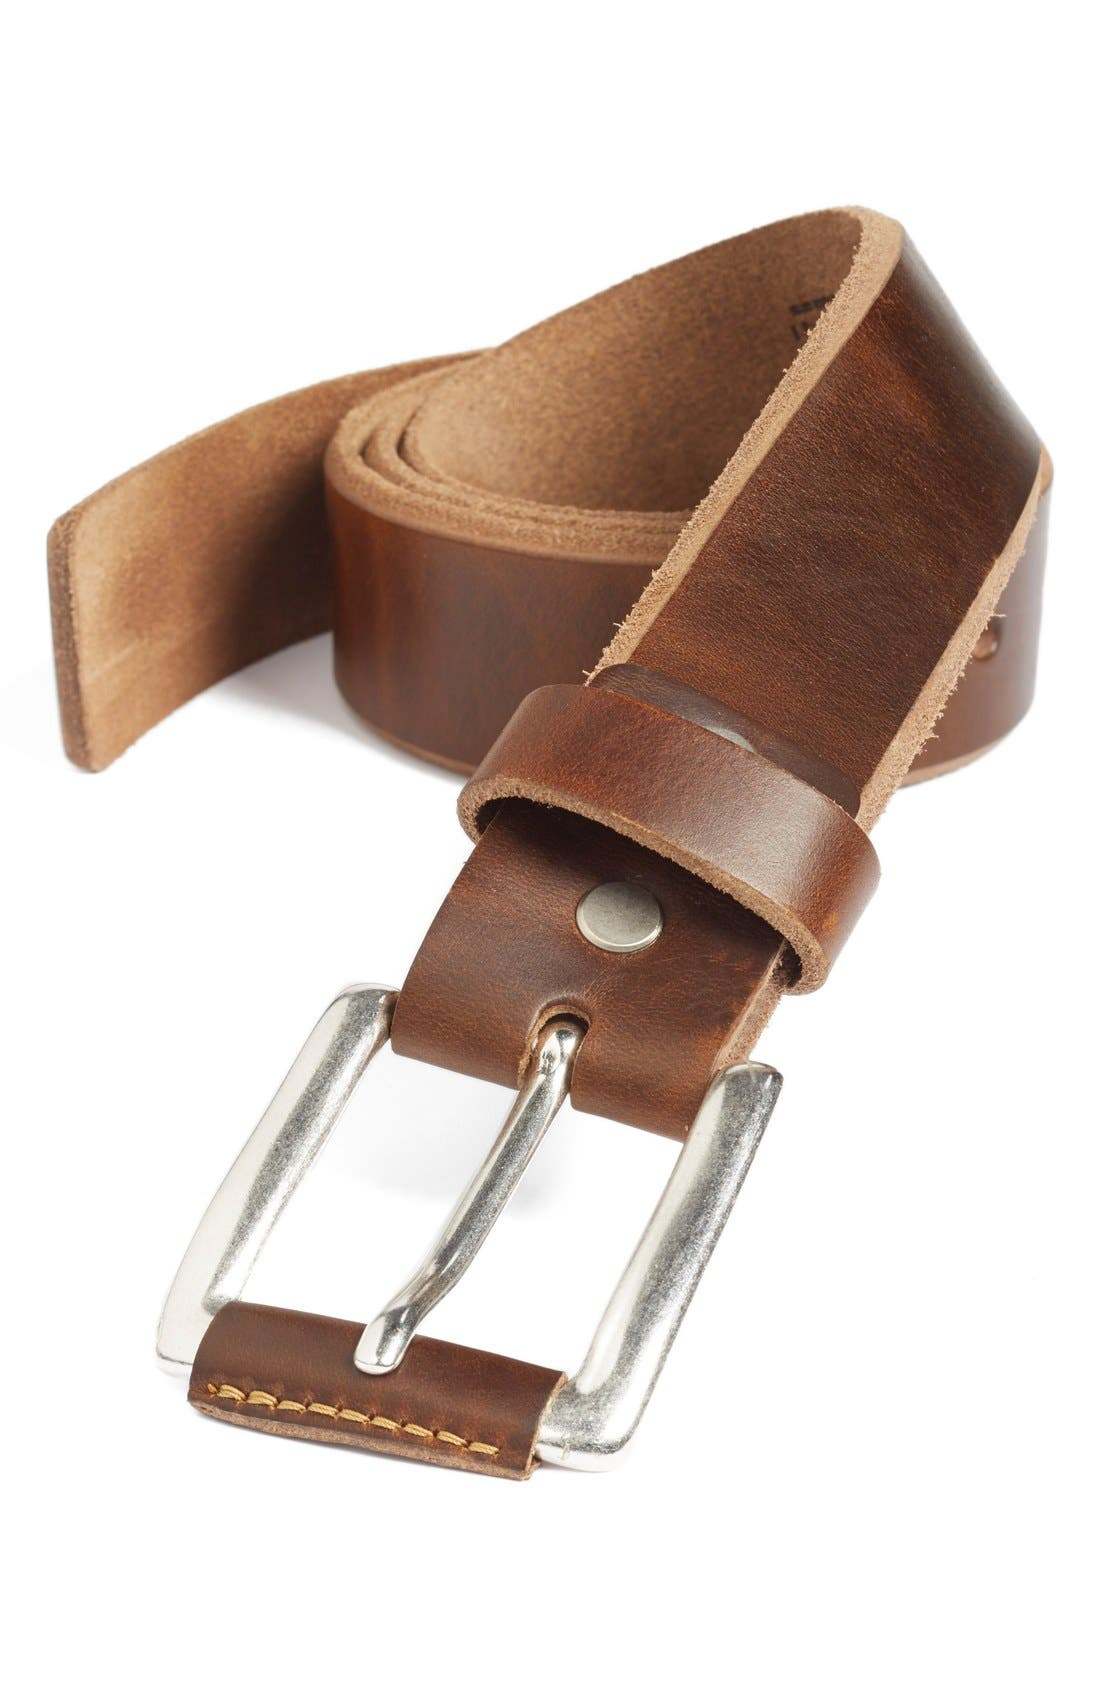 'Coraggio' Leather Belt,                             Main thumbnail 1, color,                             219